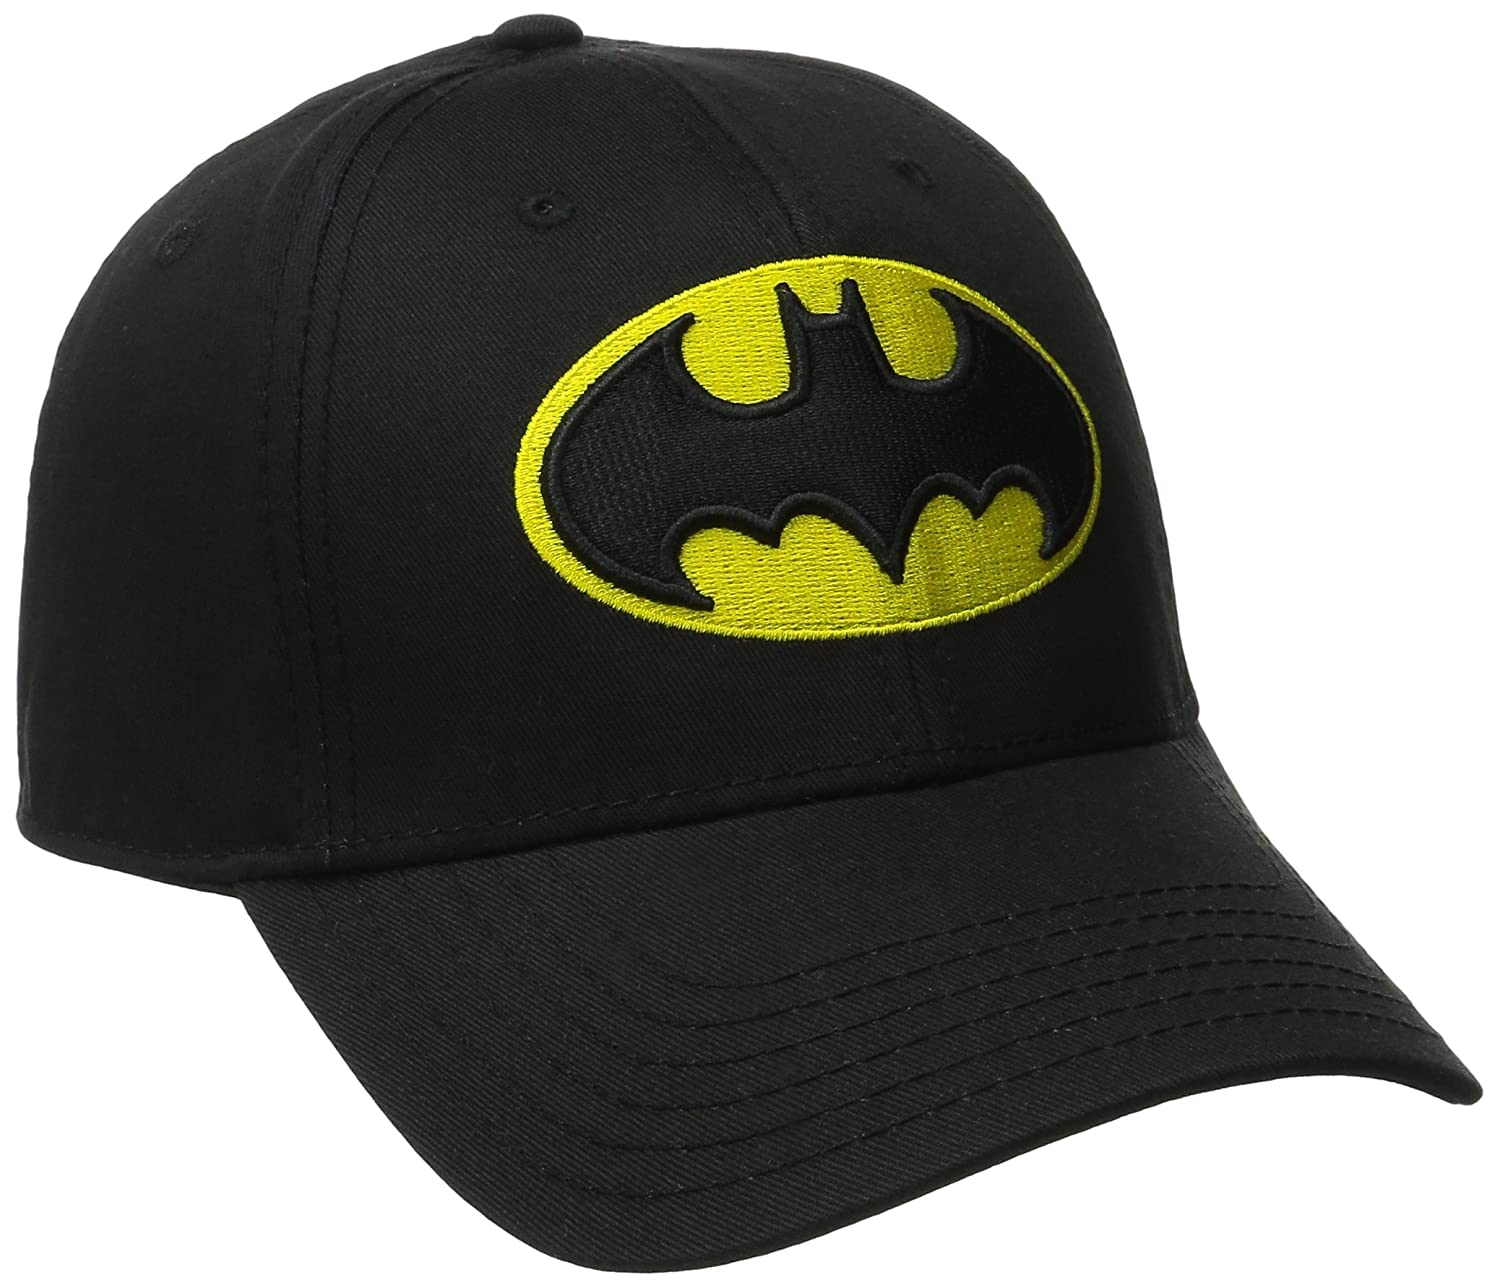 You searched for: batman caps! Etsy is the home to thousands of handmade, vintage, and one-of-a-kind products and gifts related to your search. No matter what you're looking for or where you are in the world, our global marketplace of sellers can help you find unique and affordable options. Let's get started!